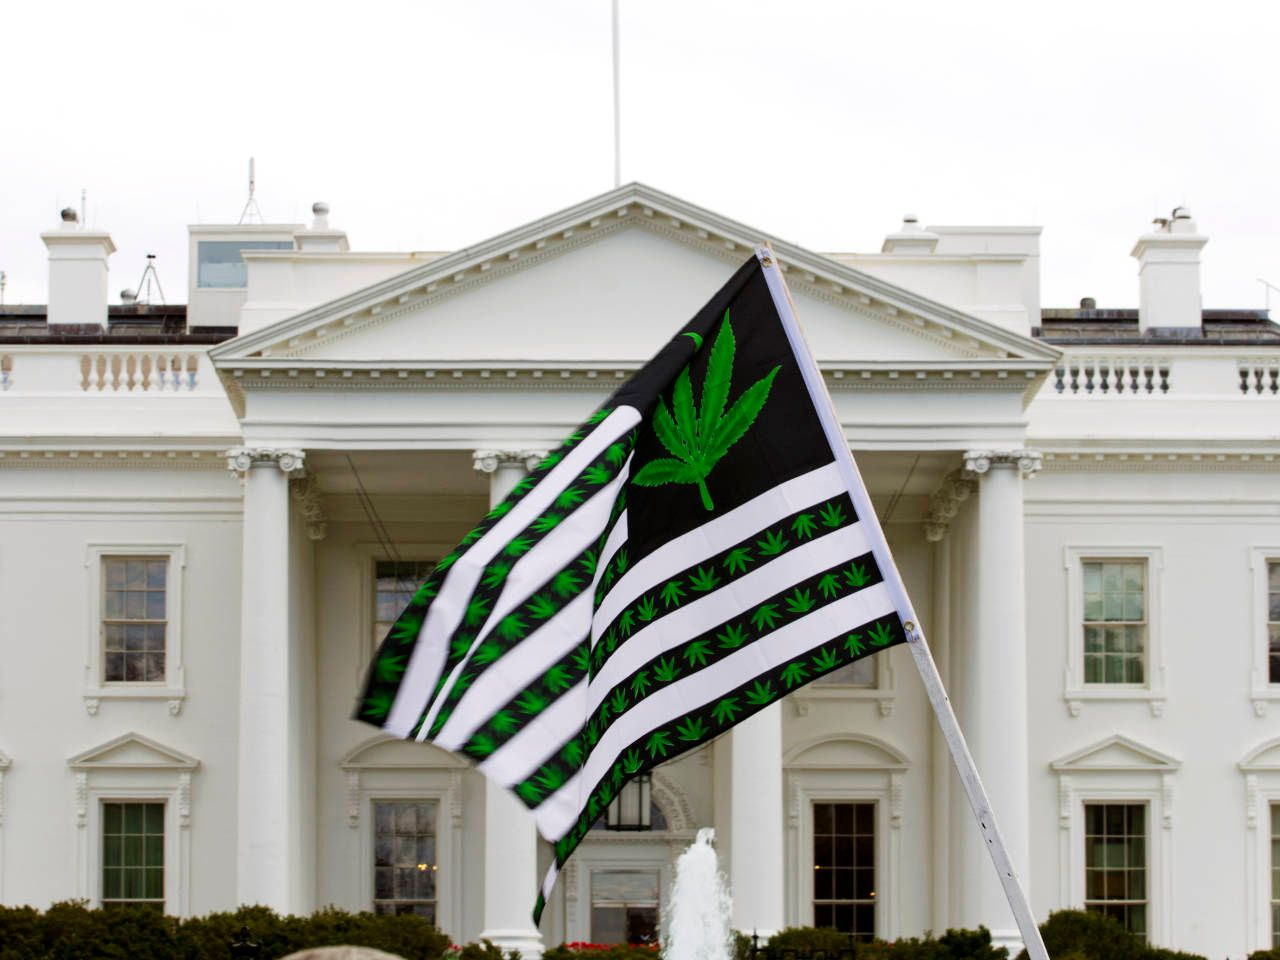 Washington may have finally found bipartisan consensus with Congressional Cannabis Caucus